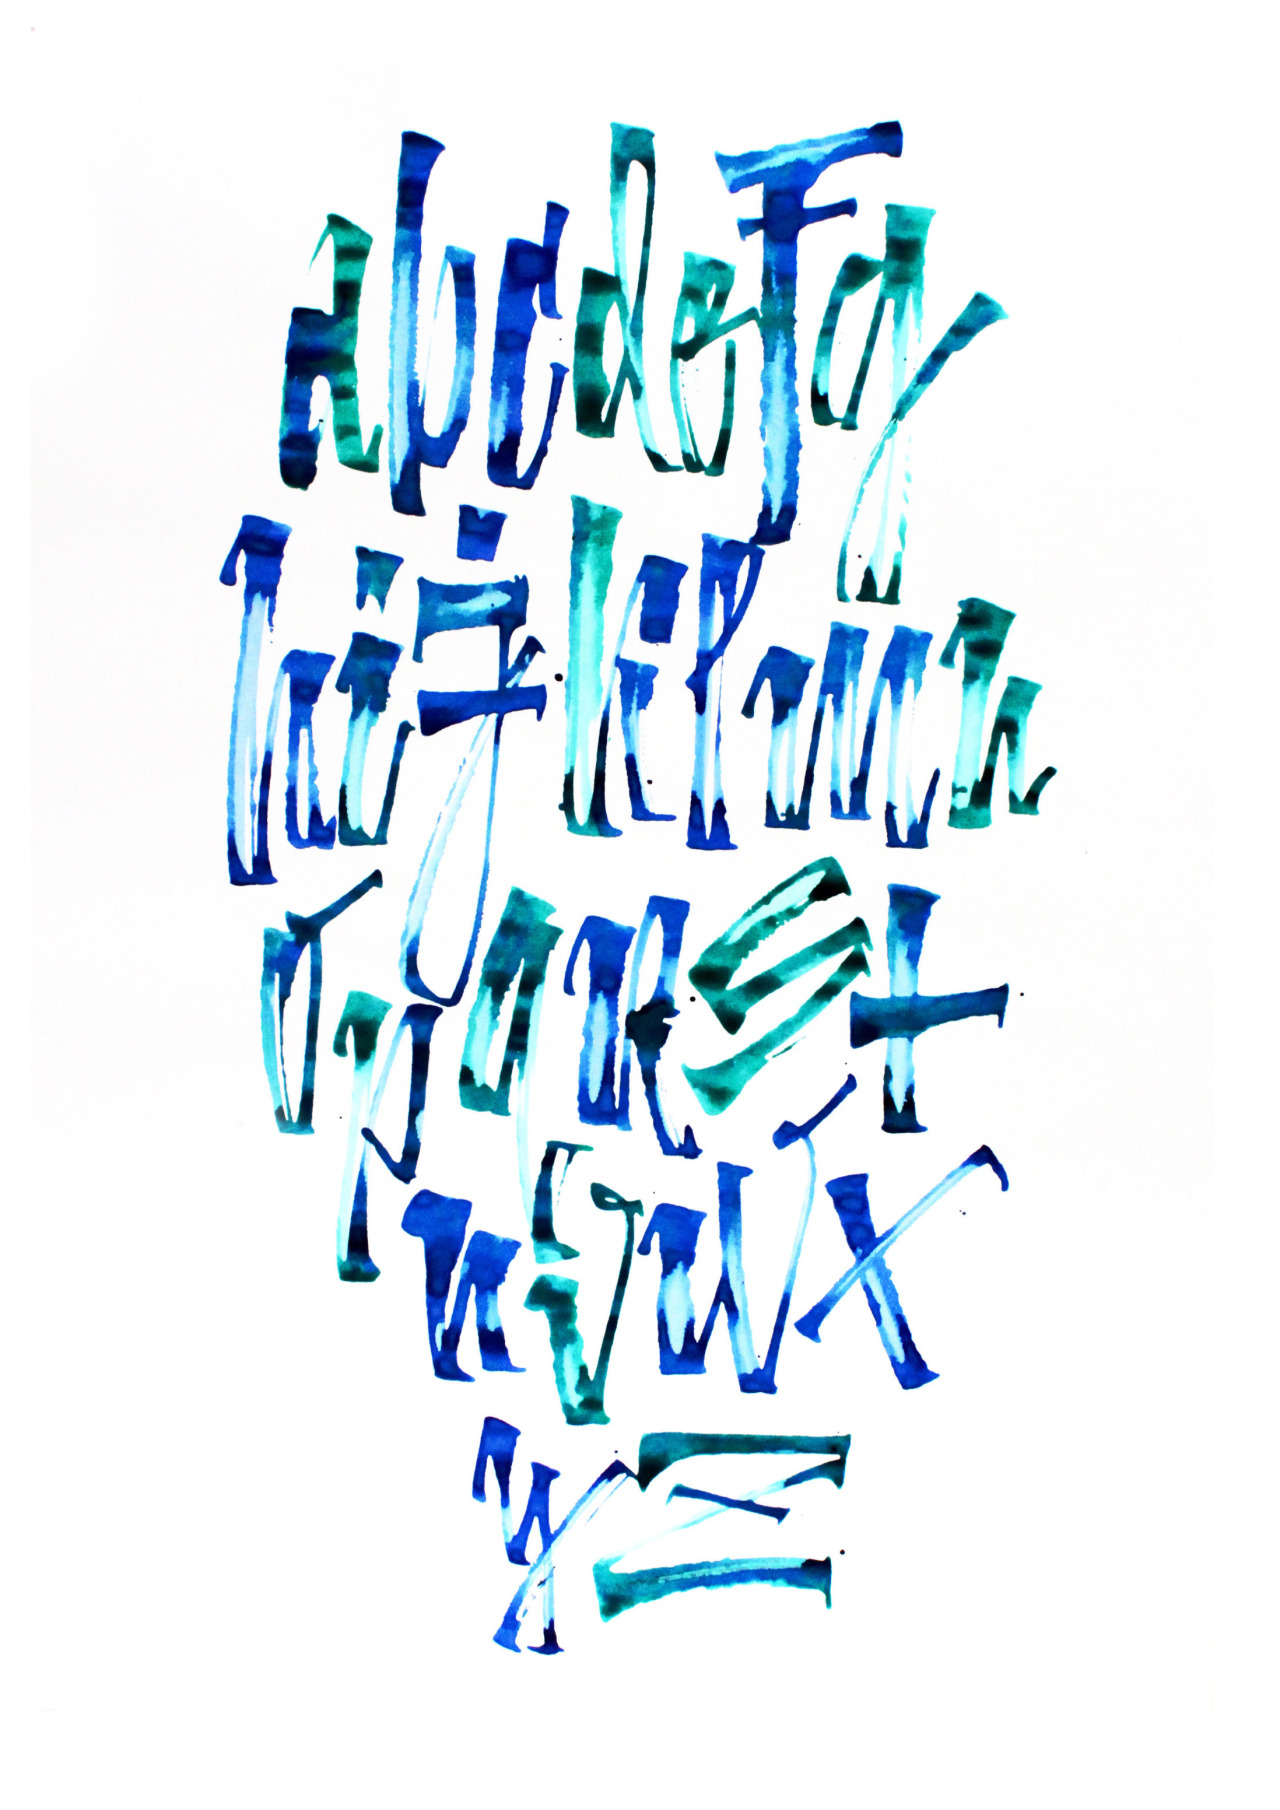 Calligraphi.ca - Alphabet - Ruling pen, ink mixed on papper - Misha Karagezyan